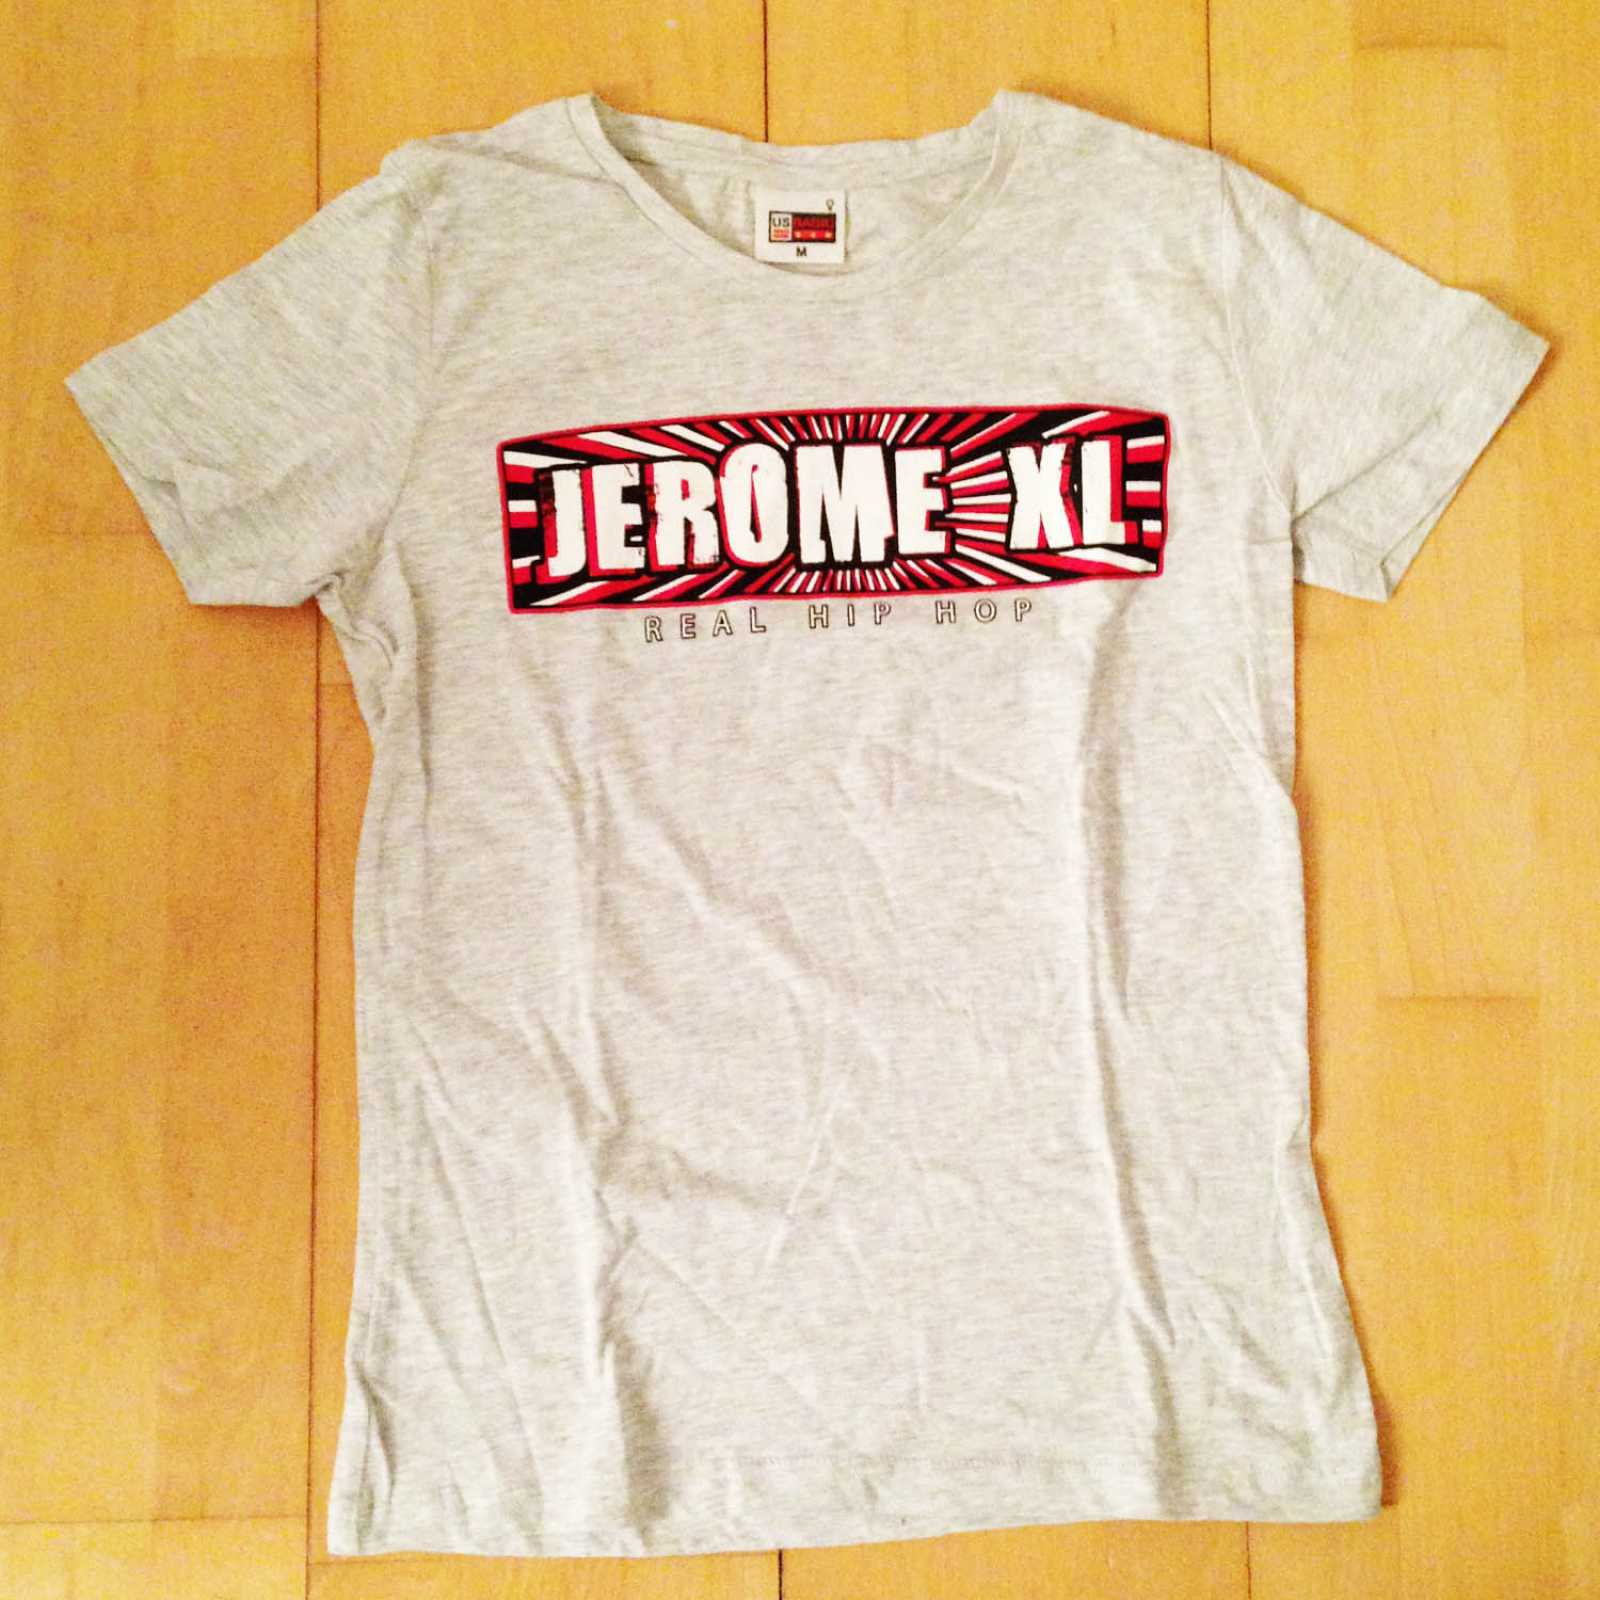 Jerome XL - Girly T-Shirt - Grijs